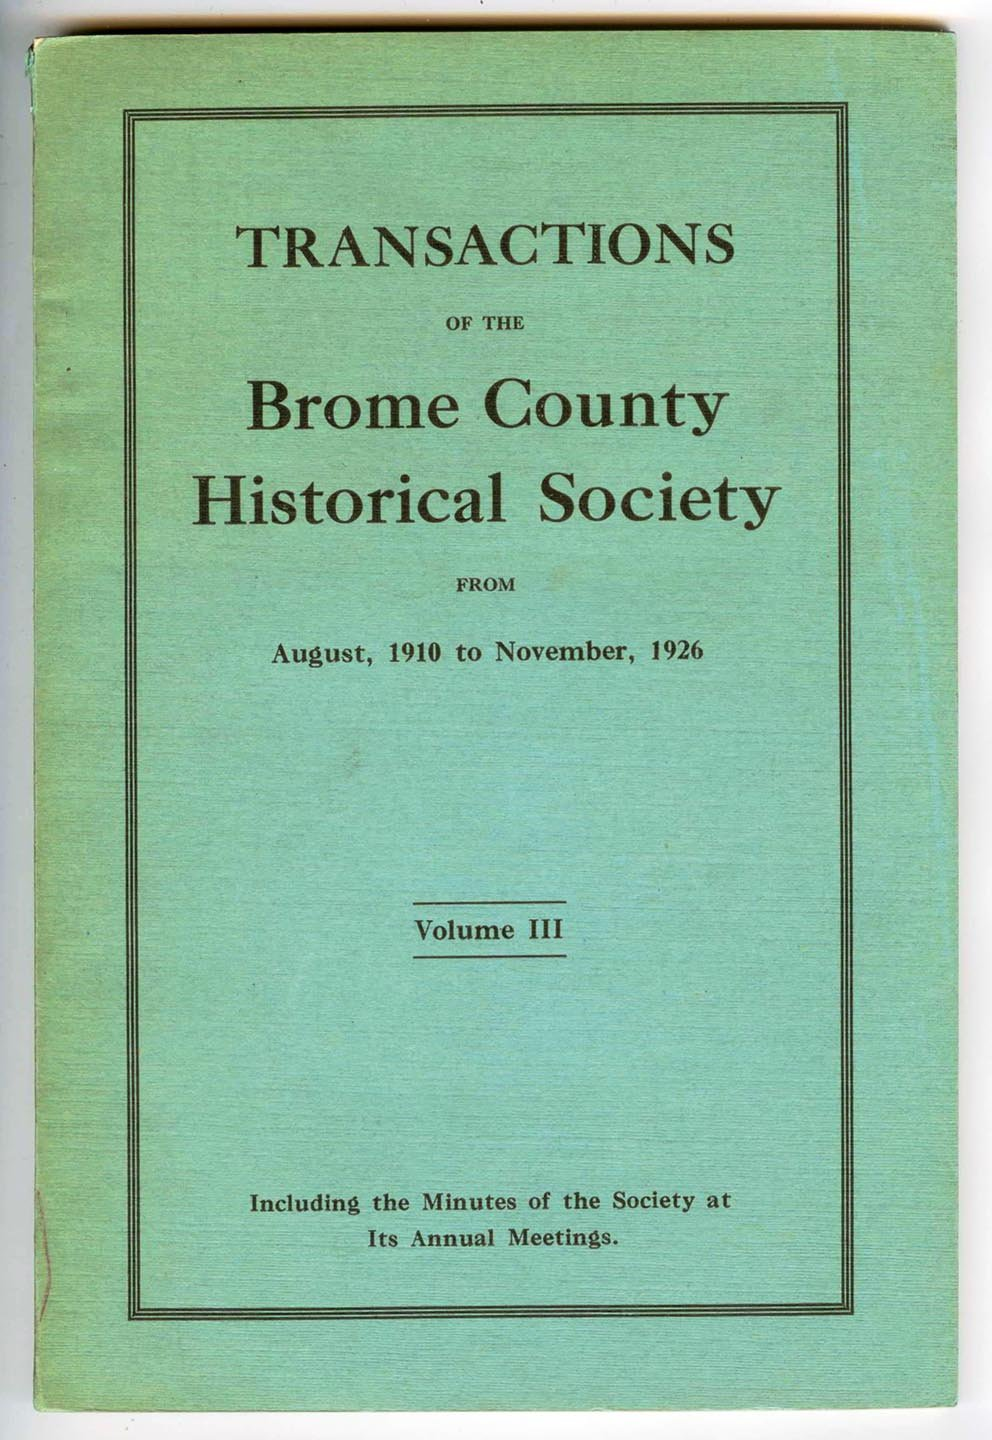 Transactions of the Brome County Historical Society From August, 1910 to November, 1926. Including the Minutes of the Society at Its Annual Meetings. Volume III